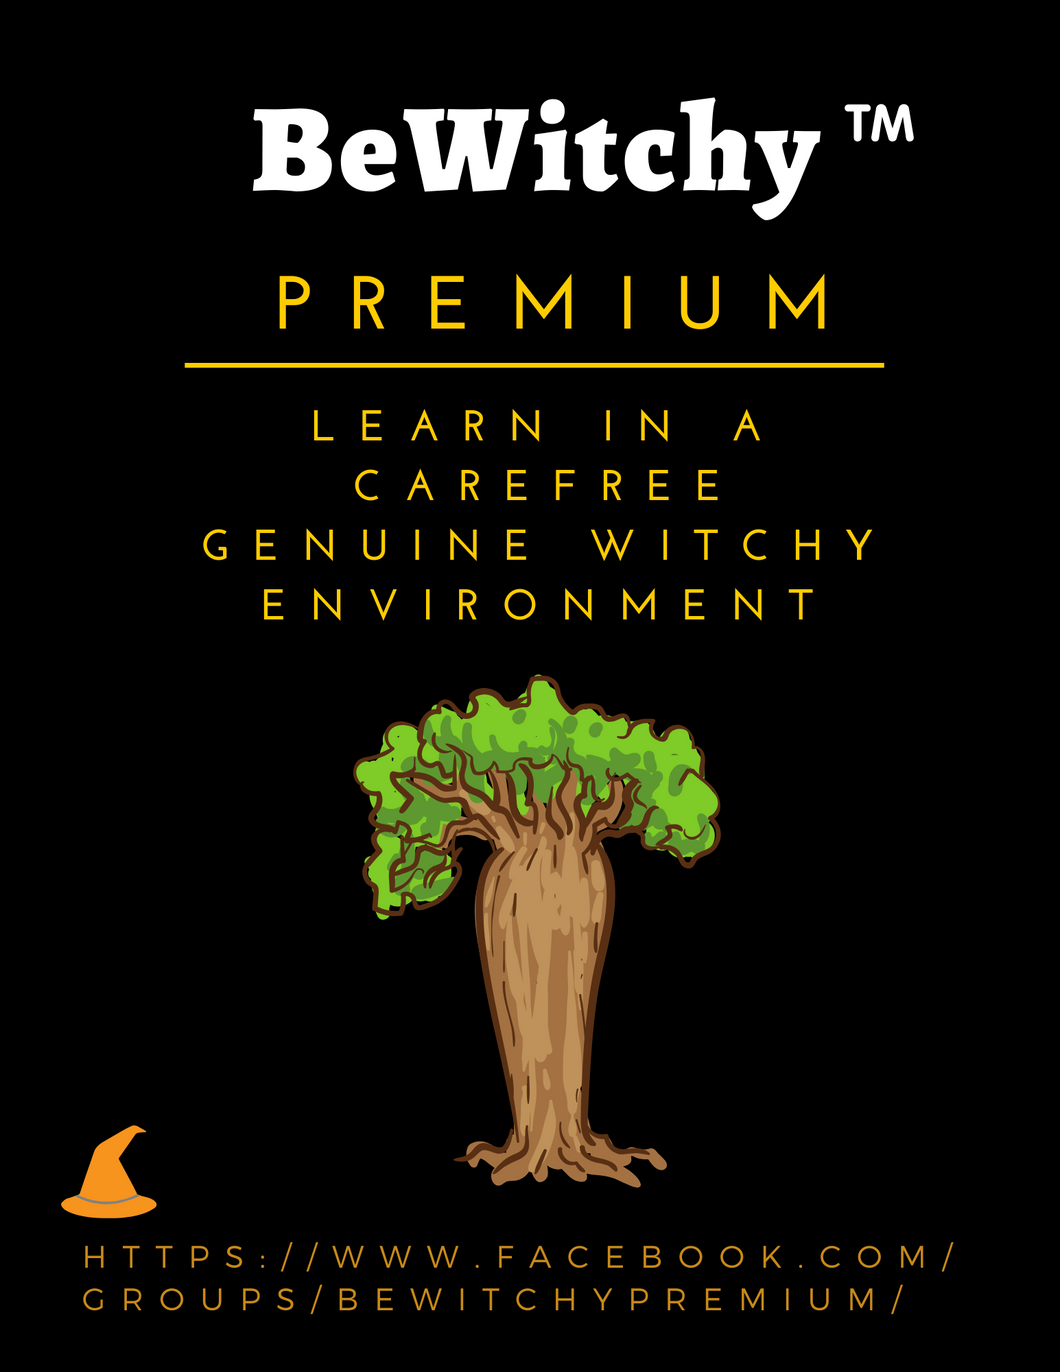 BeWitchy Academy Group